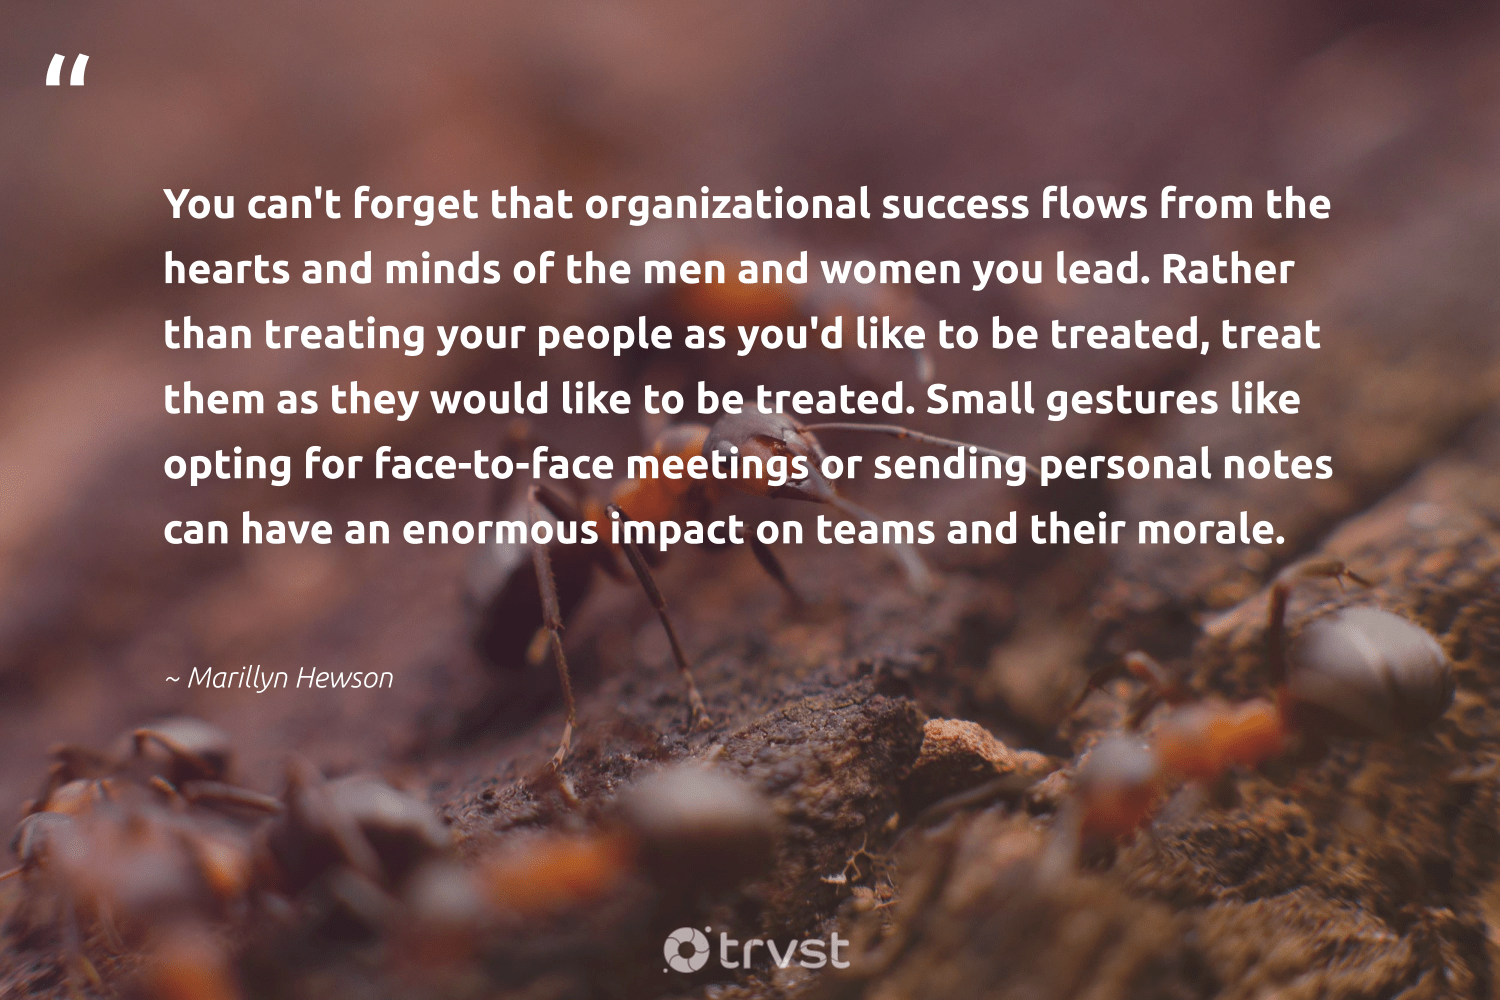 """You can't forget that organizational success flows from the hearts and minds of the men and women you lead. Rather than treating your people as you'd like to be treated, treat them as they would like to be treated. Small gestures like opting for face-to-face meetings or sending personal notes can have an enormous impact on teams and their morale.""  - Marillyn Hewson #trvst #quotes #impact #women #success #motivational #socialchange #softskills #beinspired #motivation #dogood #futureofwork"